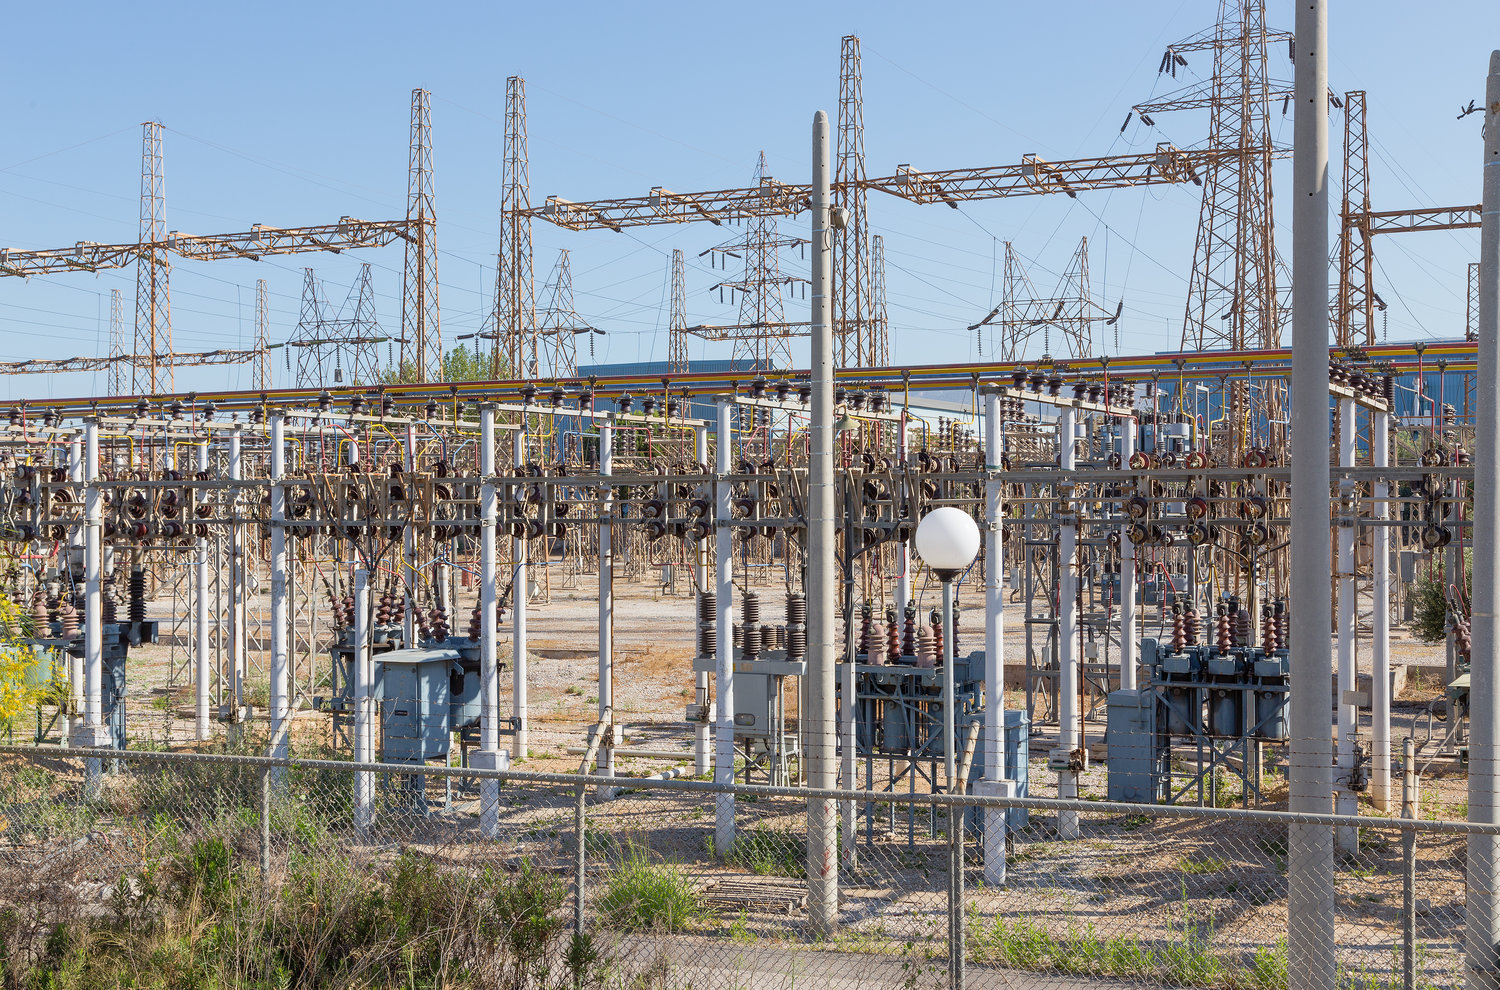 Substation Generator Cost Estimate Stamped Engineering Corporation House Wiring Industry Electrical Power